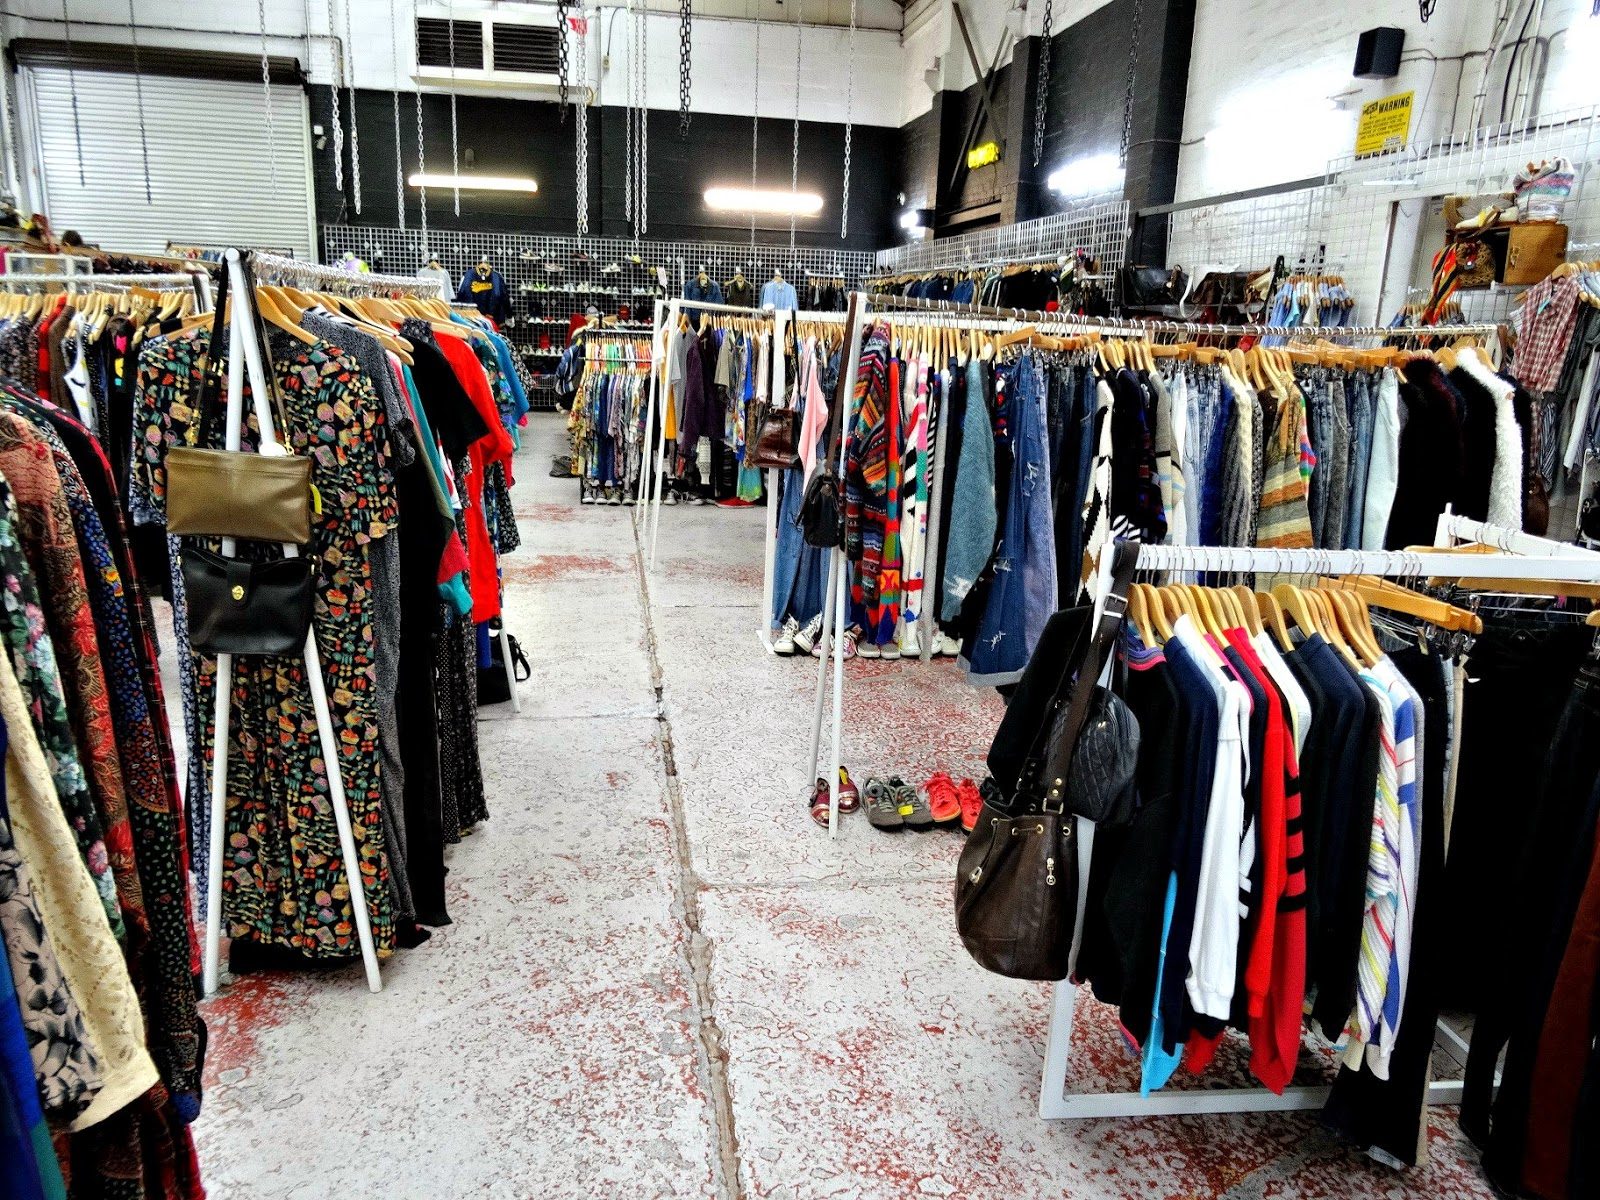 Cow Digbeth Vintage Fashion Shop in Birmingham